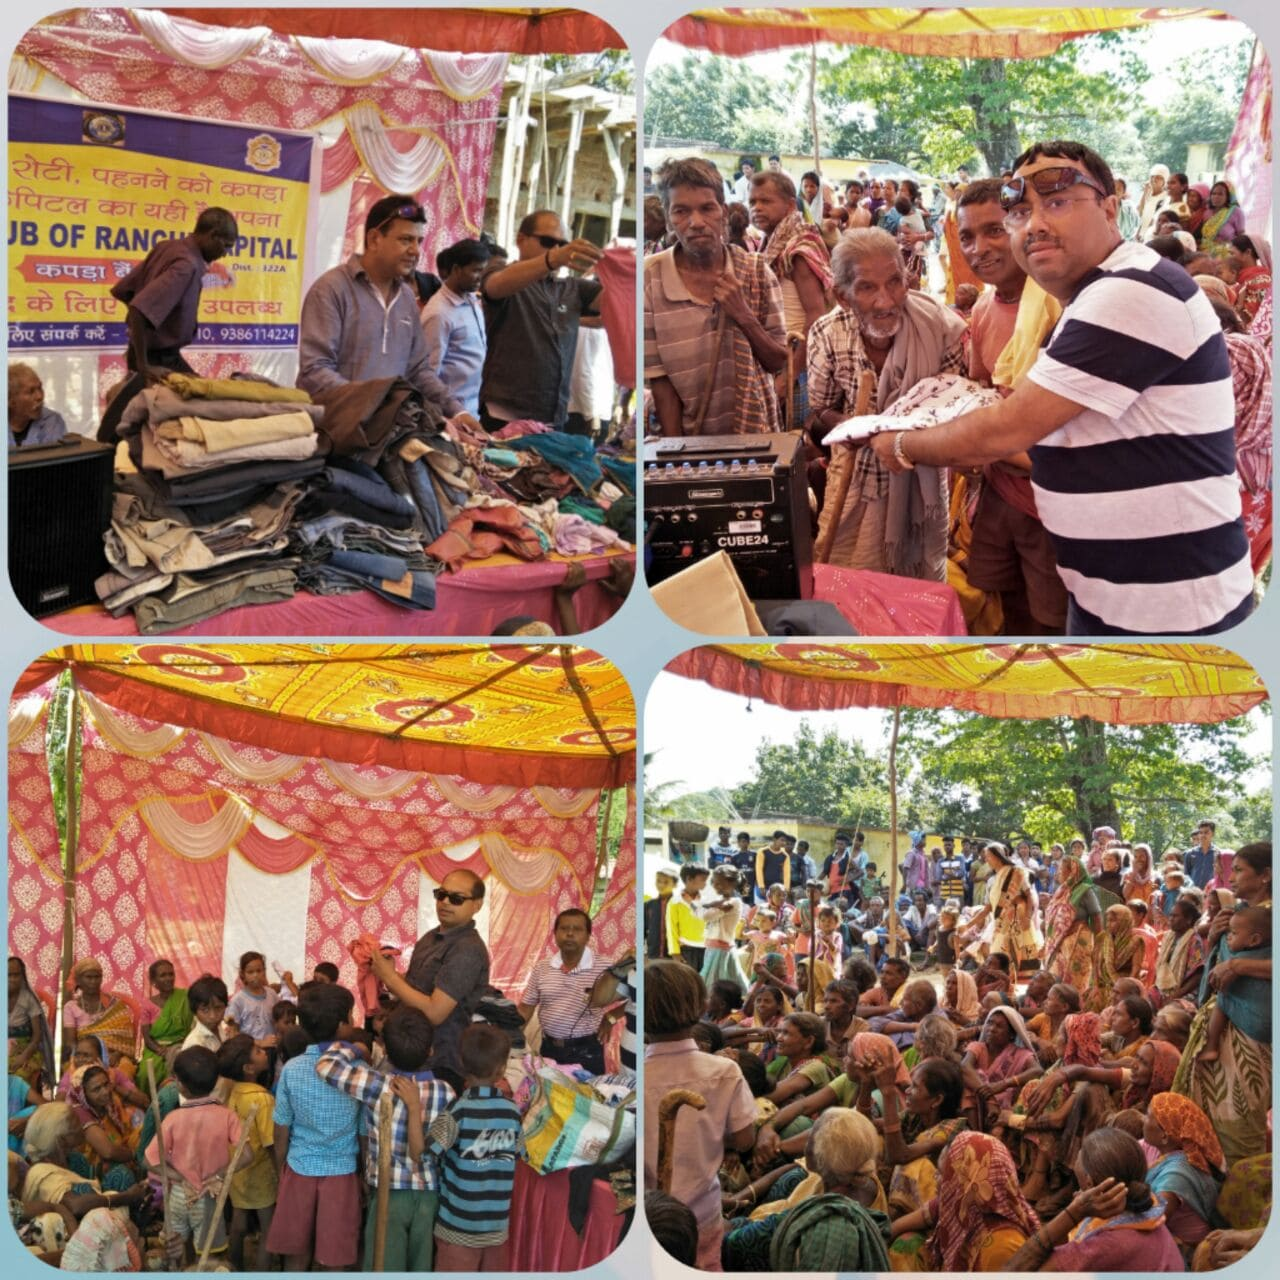 <p>Clothing was distributed among about 650 needy people under the initiative 'Cloth Bank' in Gargi village of Suharkhuttu, Ranchi by the Lions Club Ranchi Capital.</p>…